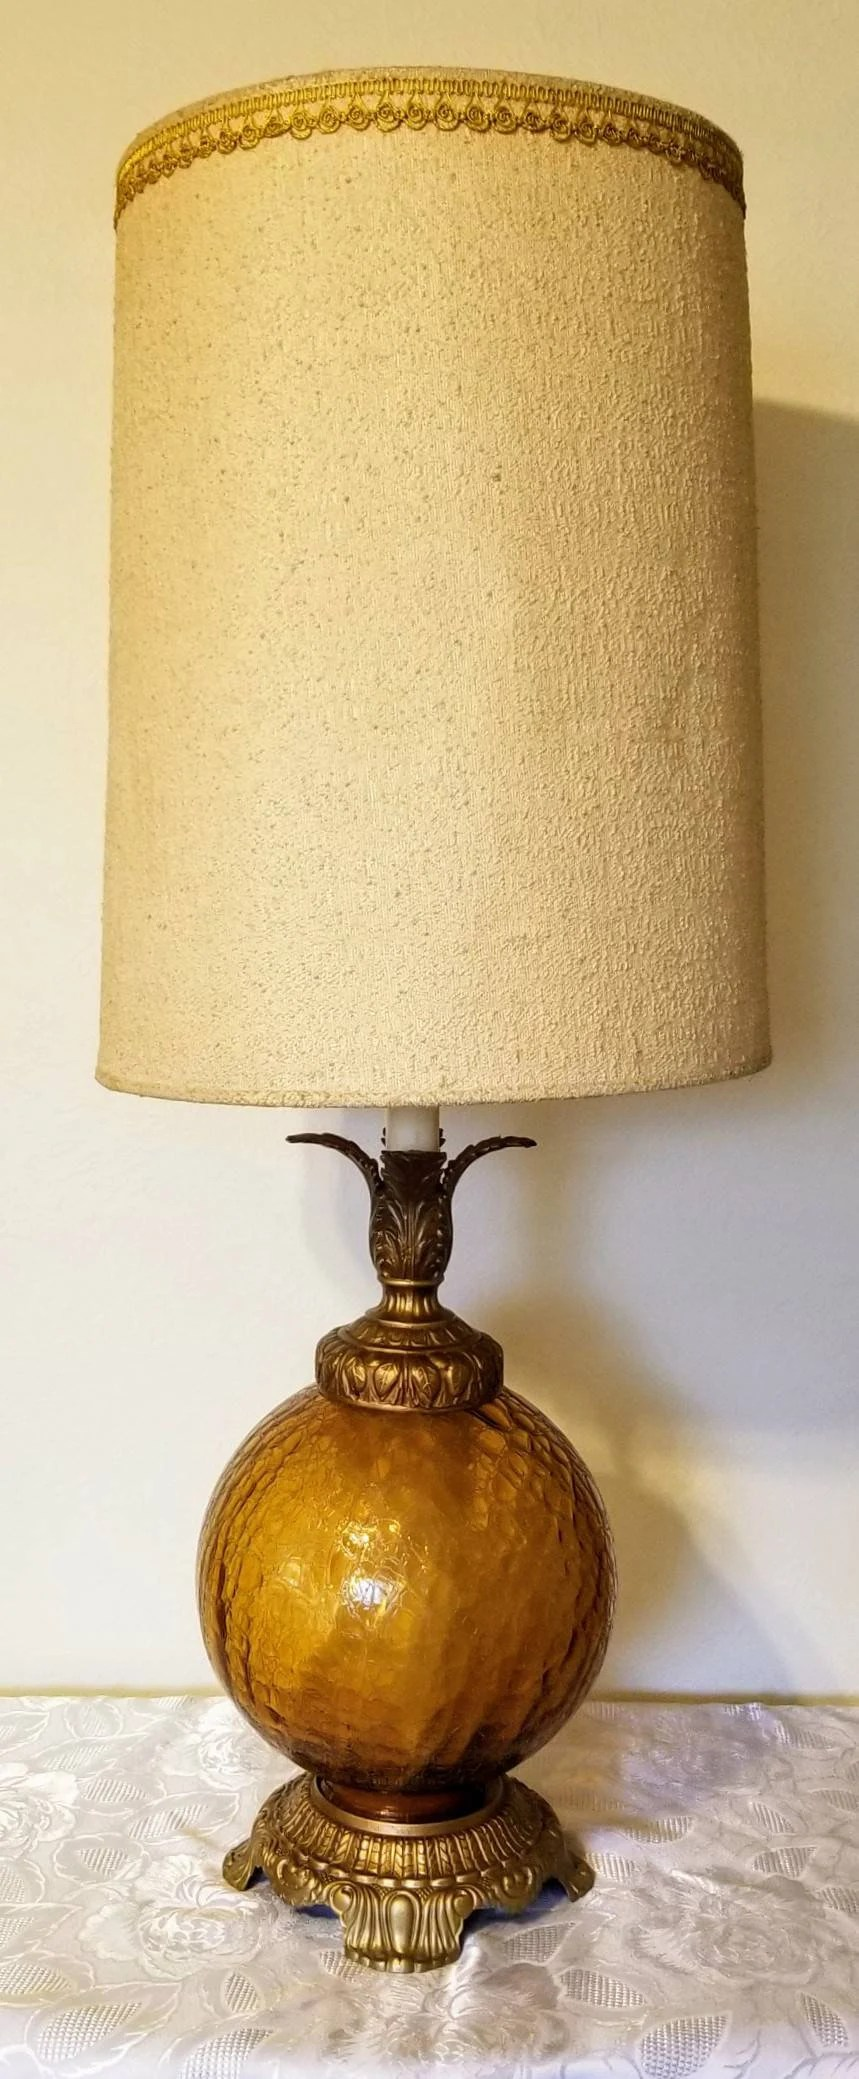 Glass Crackle Lamp Hollywood Regency Amber Crackle Glass Table Lamp